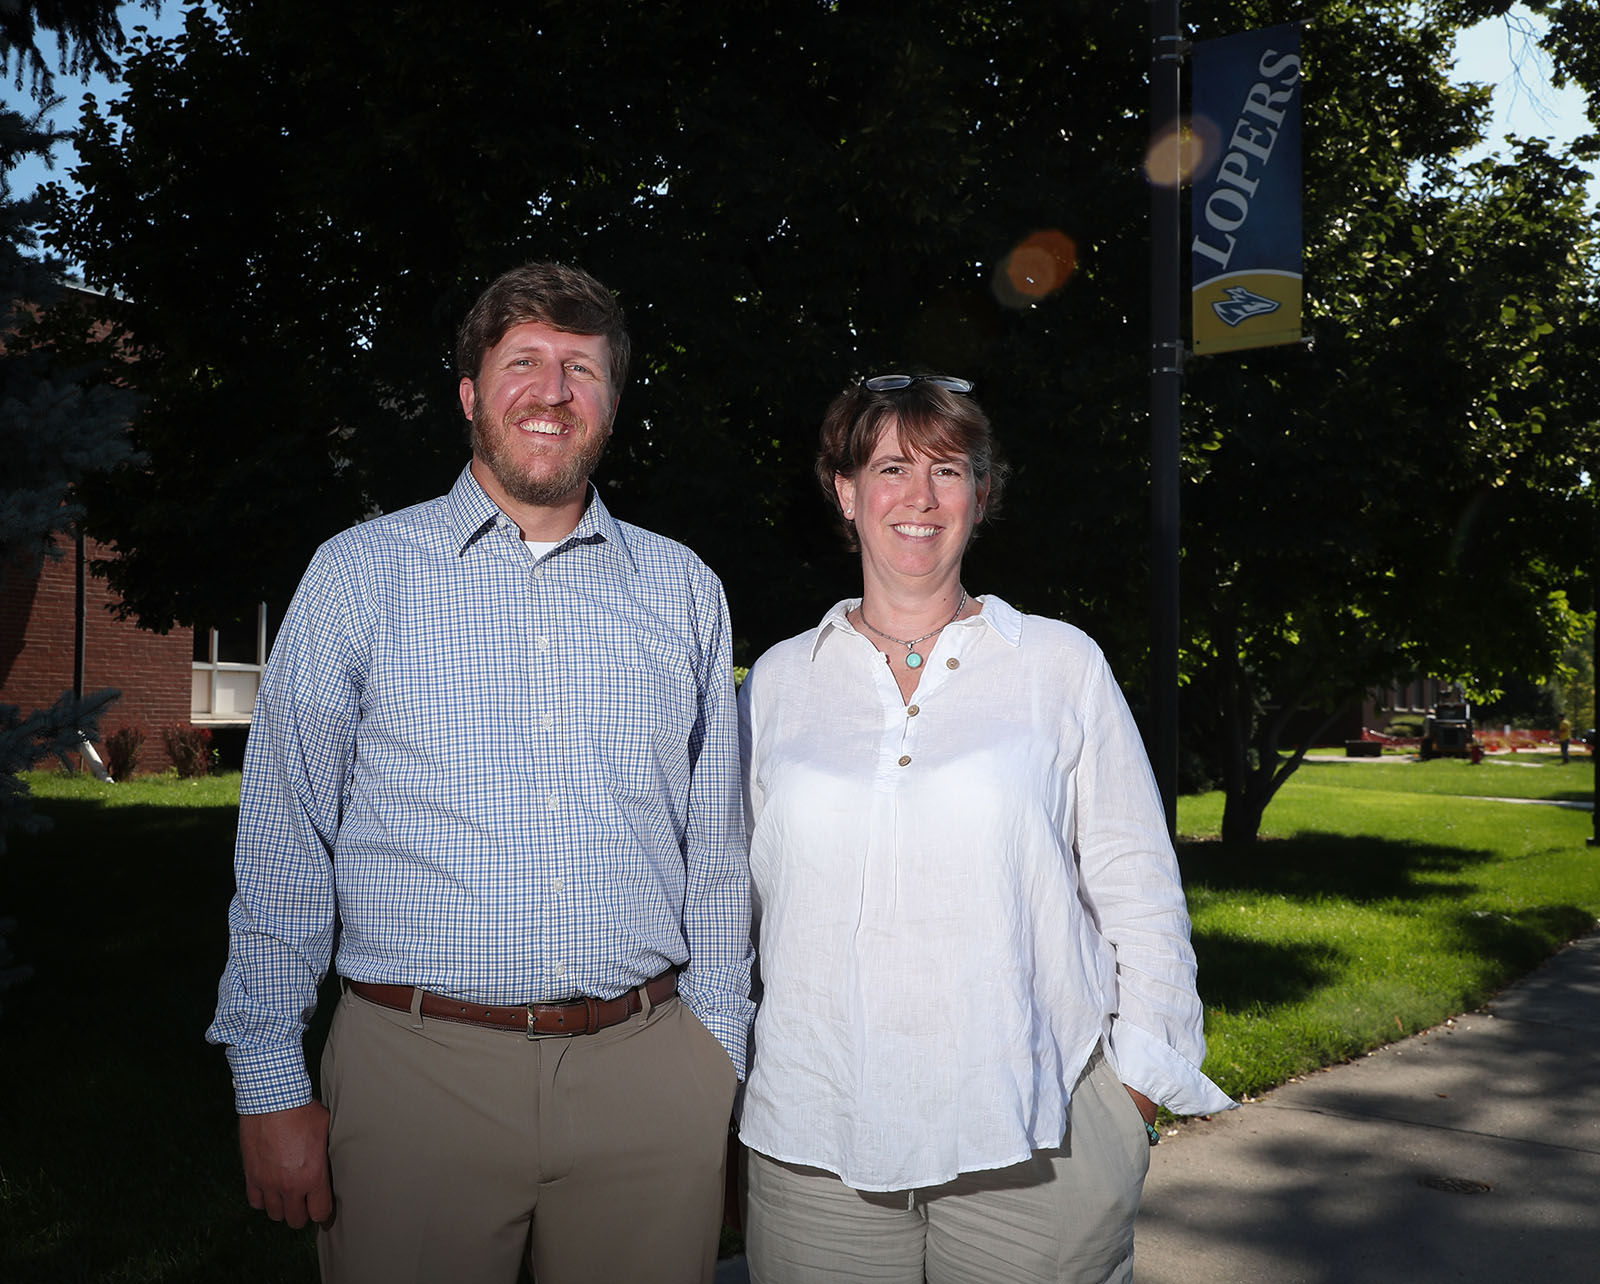 Associate director Aaron Estes and director Amy Rundstrom lead UNK's Academic Advising and Career Development Office. Located inside the Memorial Student Affairs Building, the office offers a variety of services that help students succeed both during and after their time at UNK. (Photo by Corbey R. Dorsey, UNK Communications)